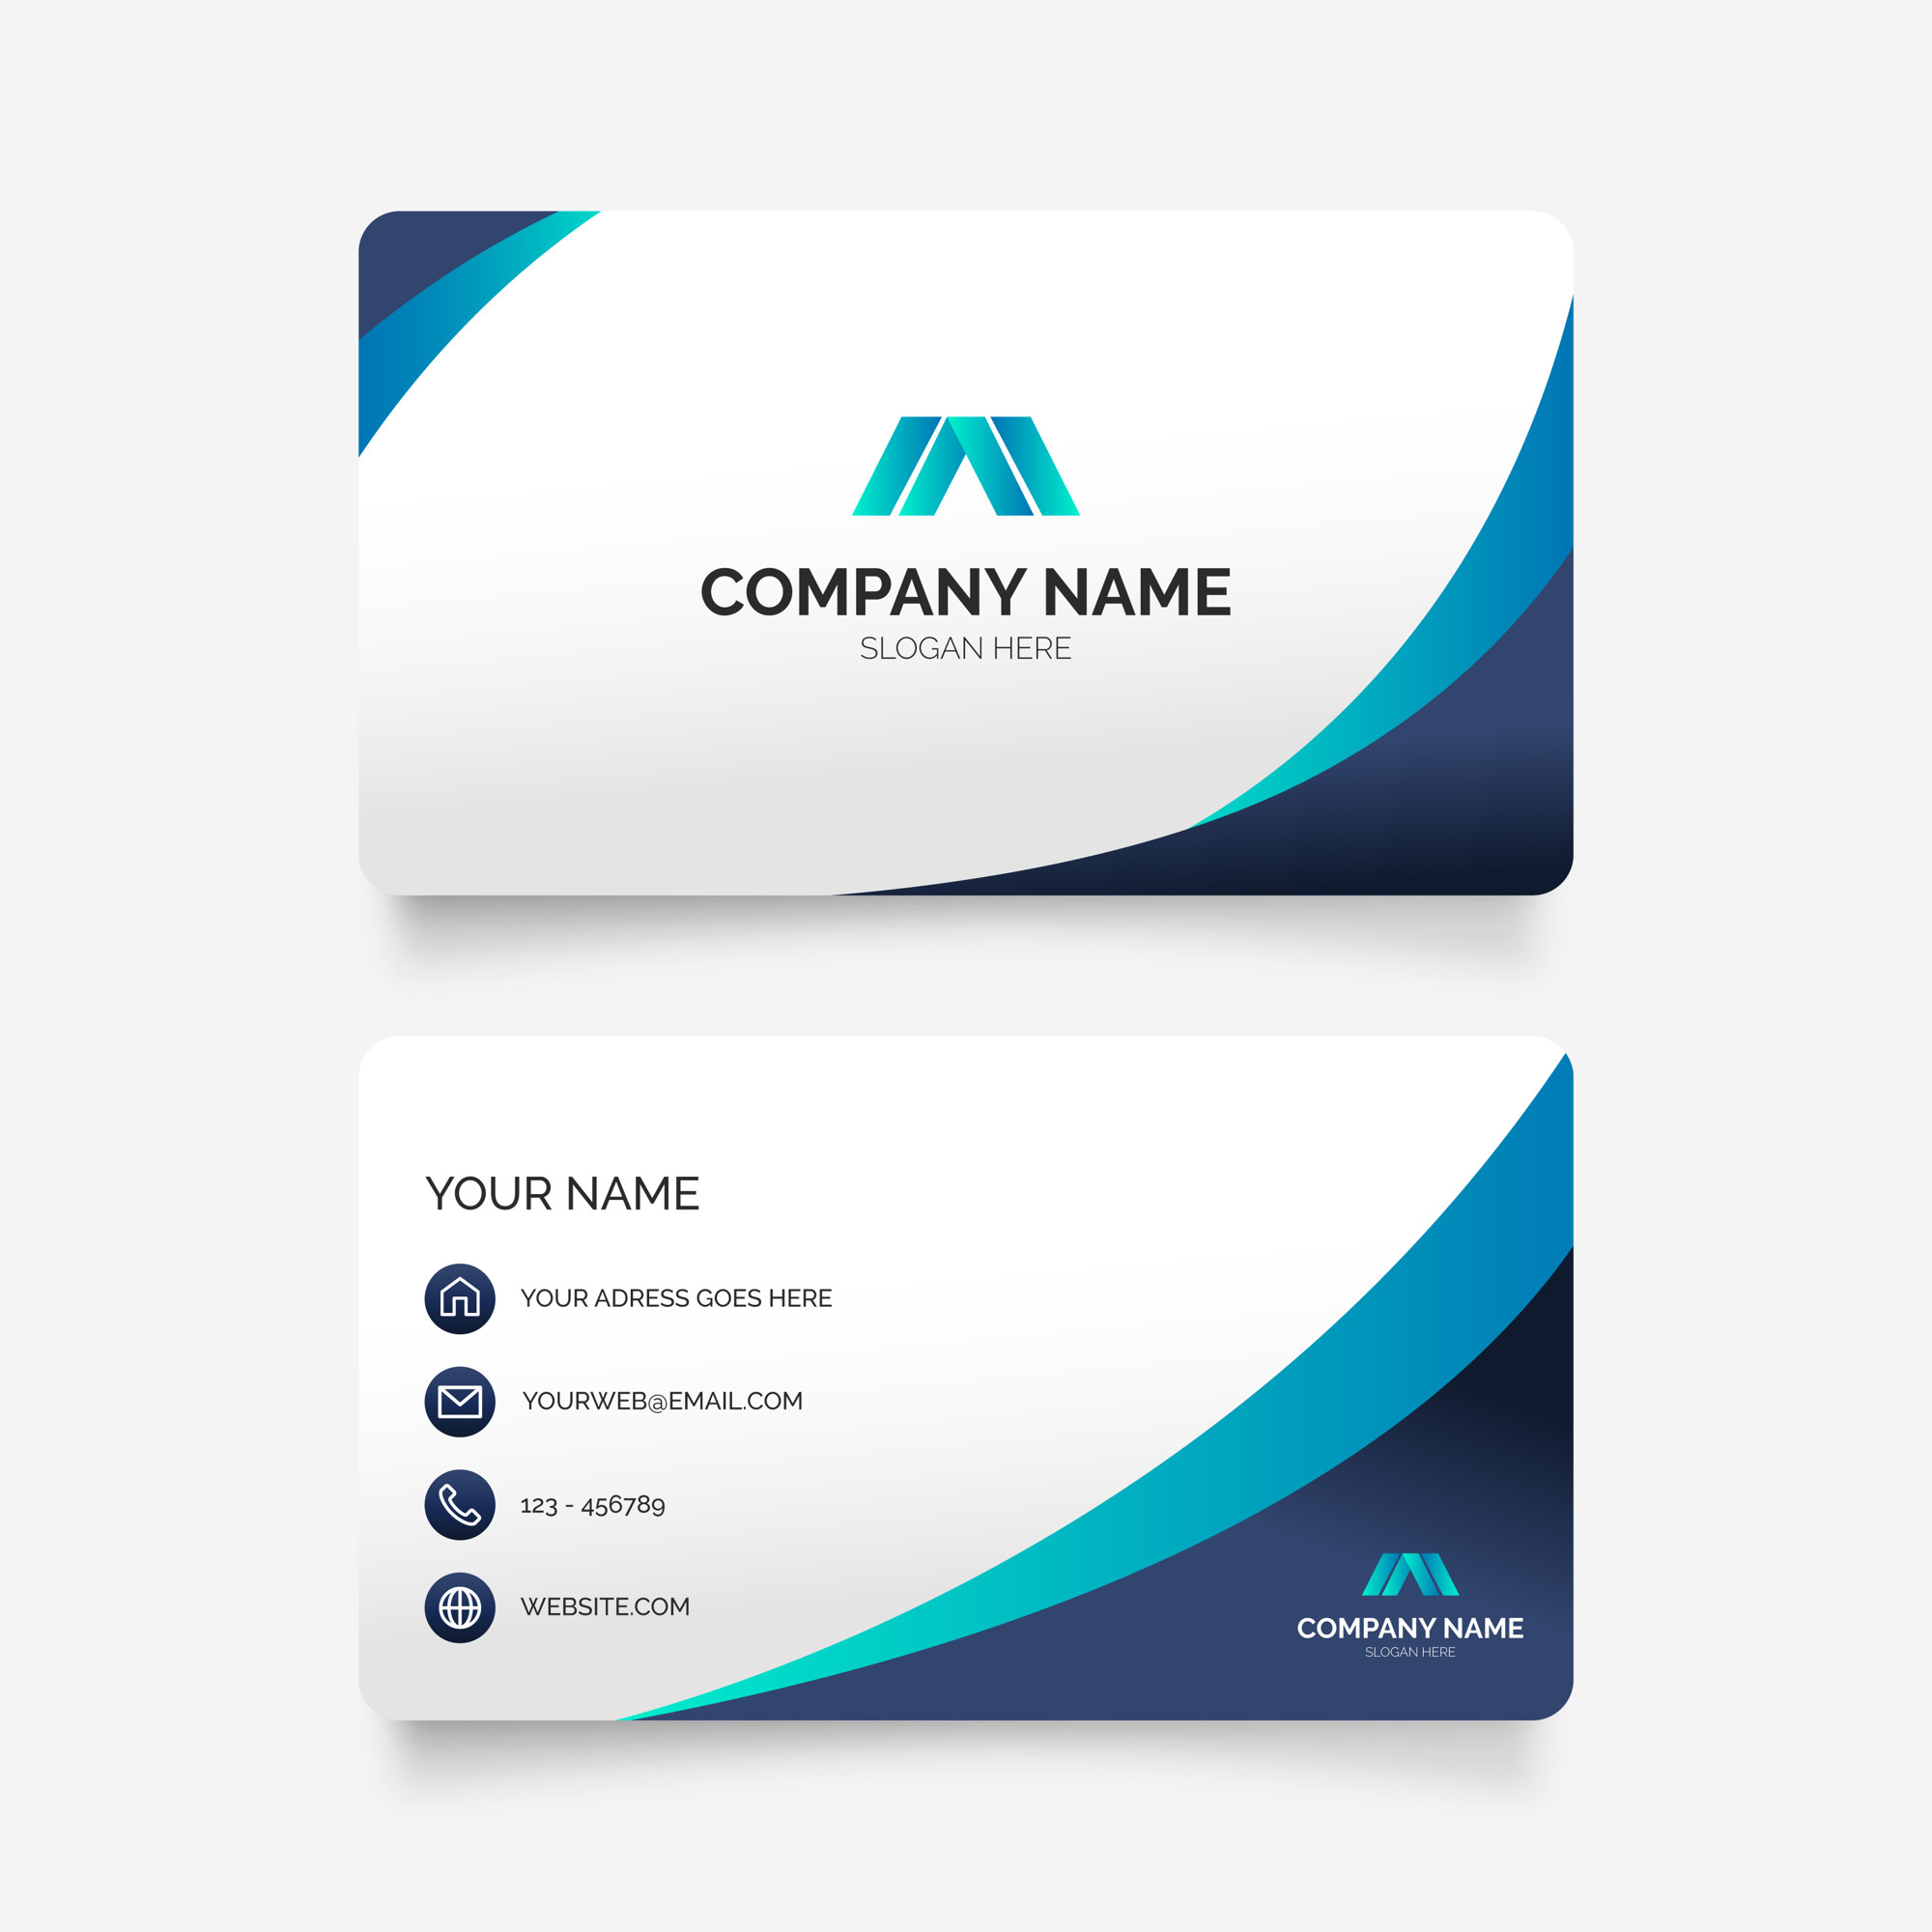 Elegant Business Card in Blue Colors